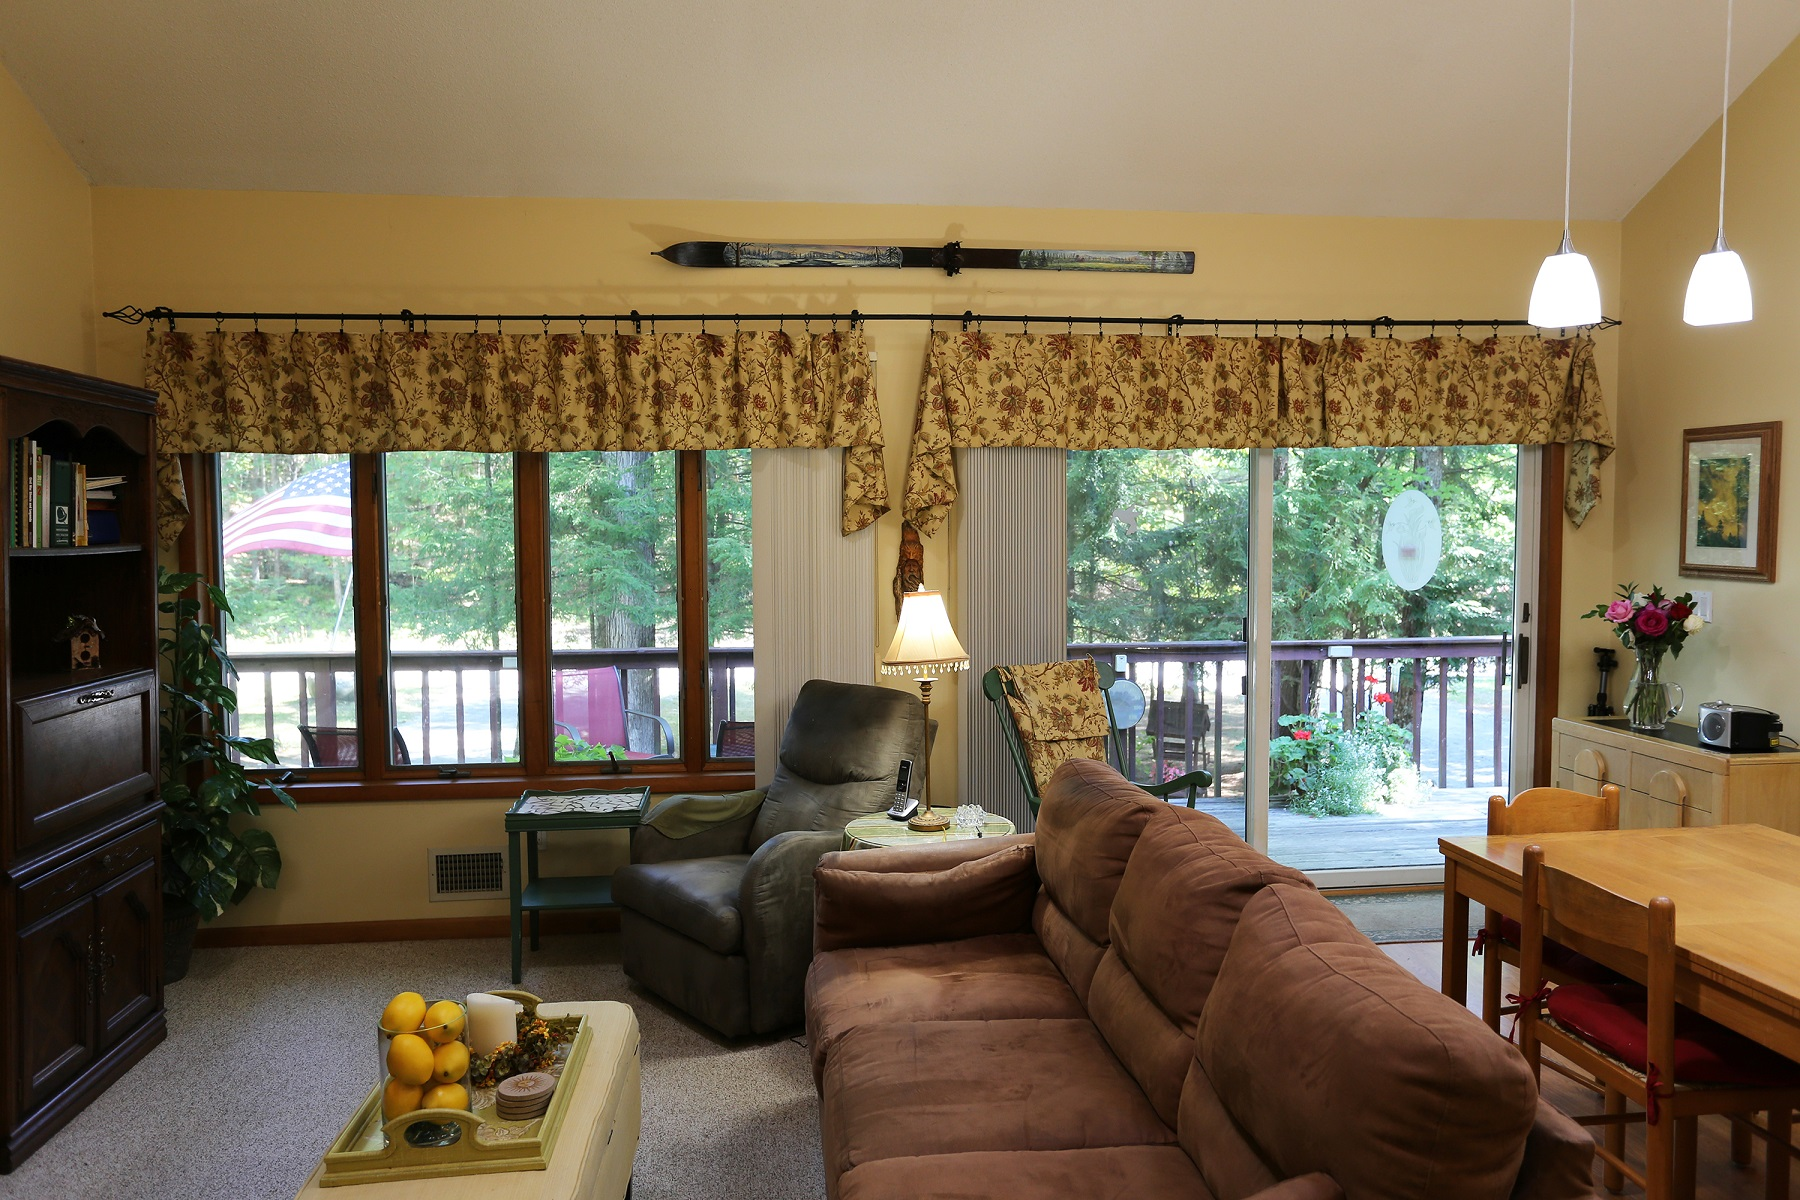 Additional photo for property listing at Tranquil Contemporary 53  Pine Orchard Rd Hague, Nueva York 12836 Estados Unidos